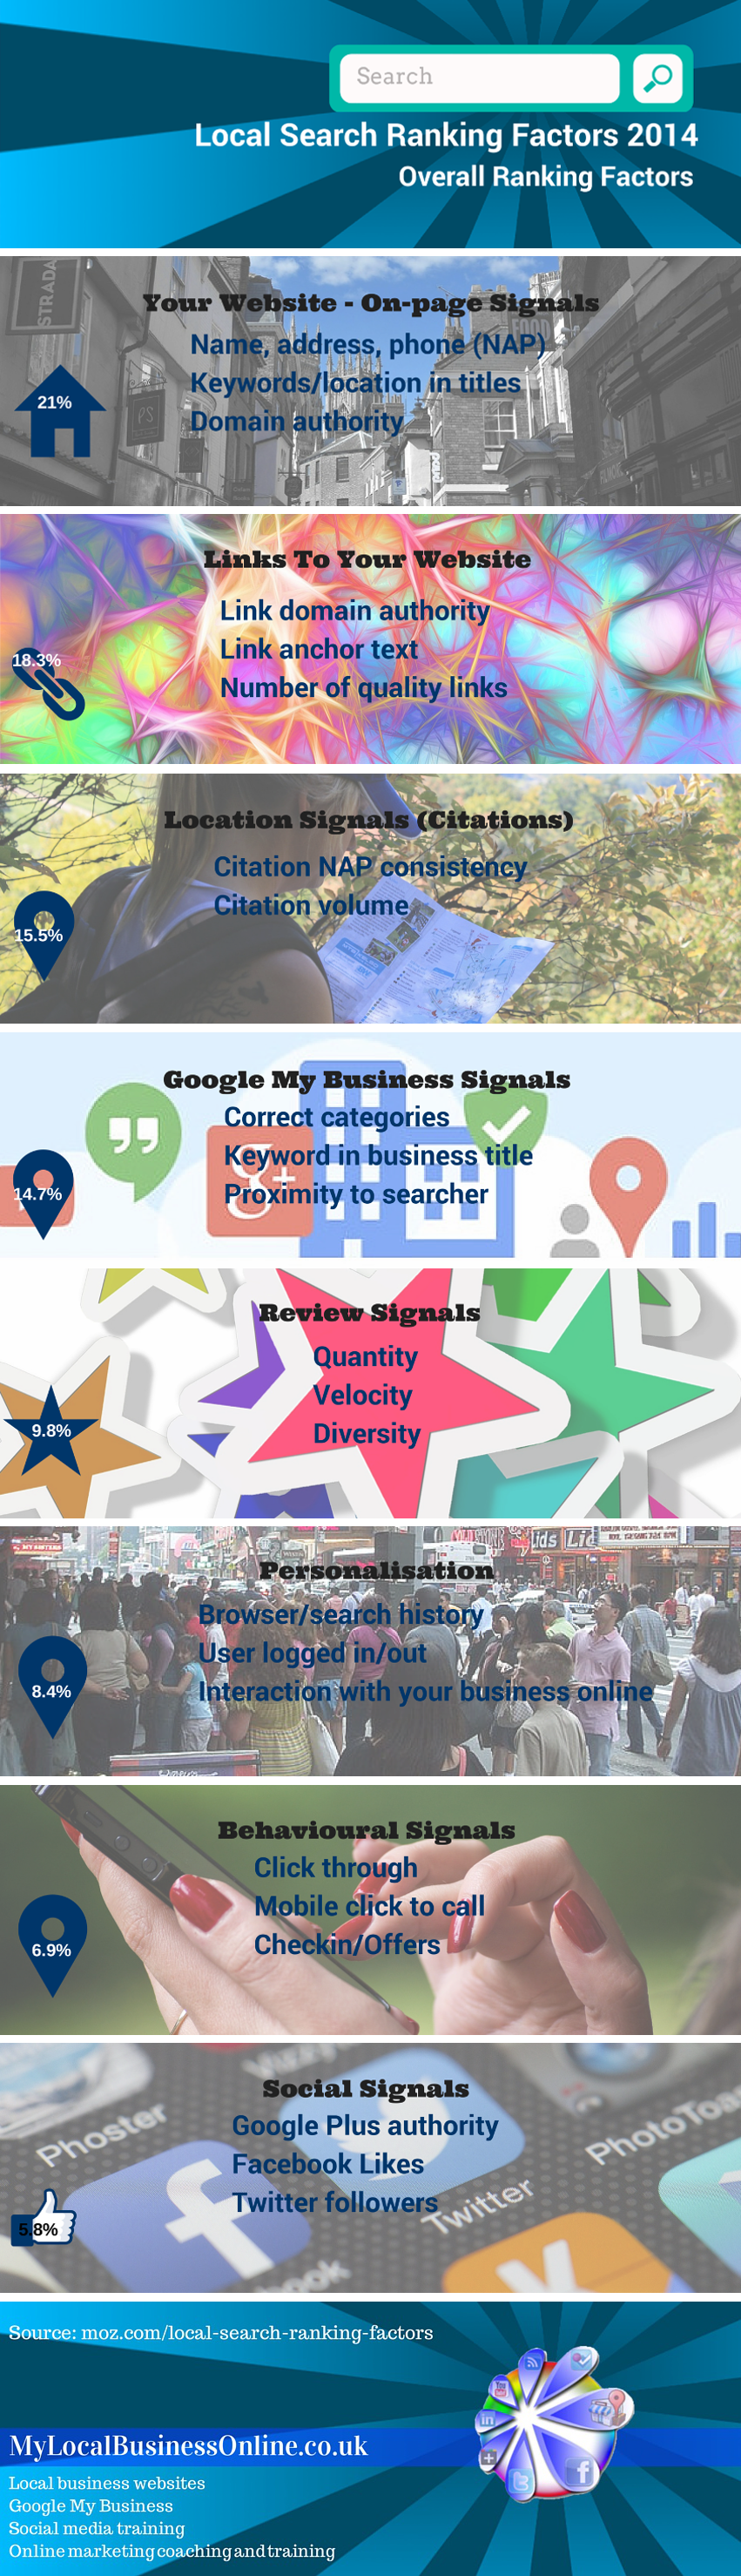 Overall Local Search Ranking Factors 2014